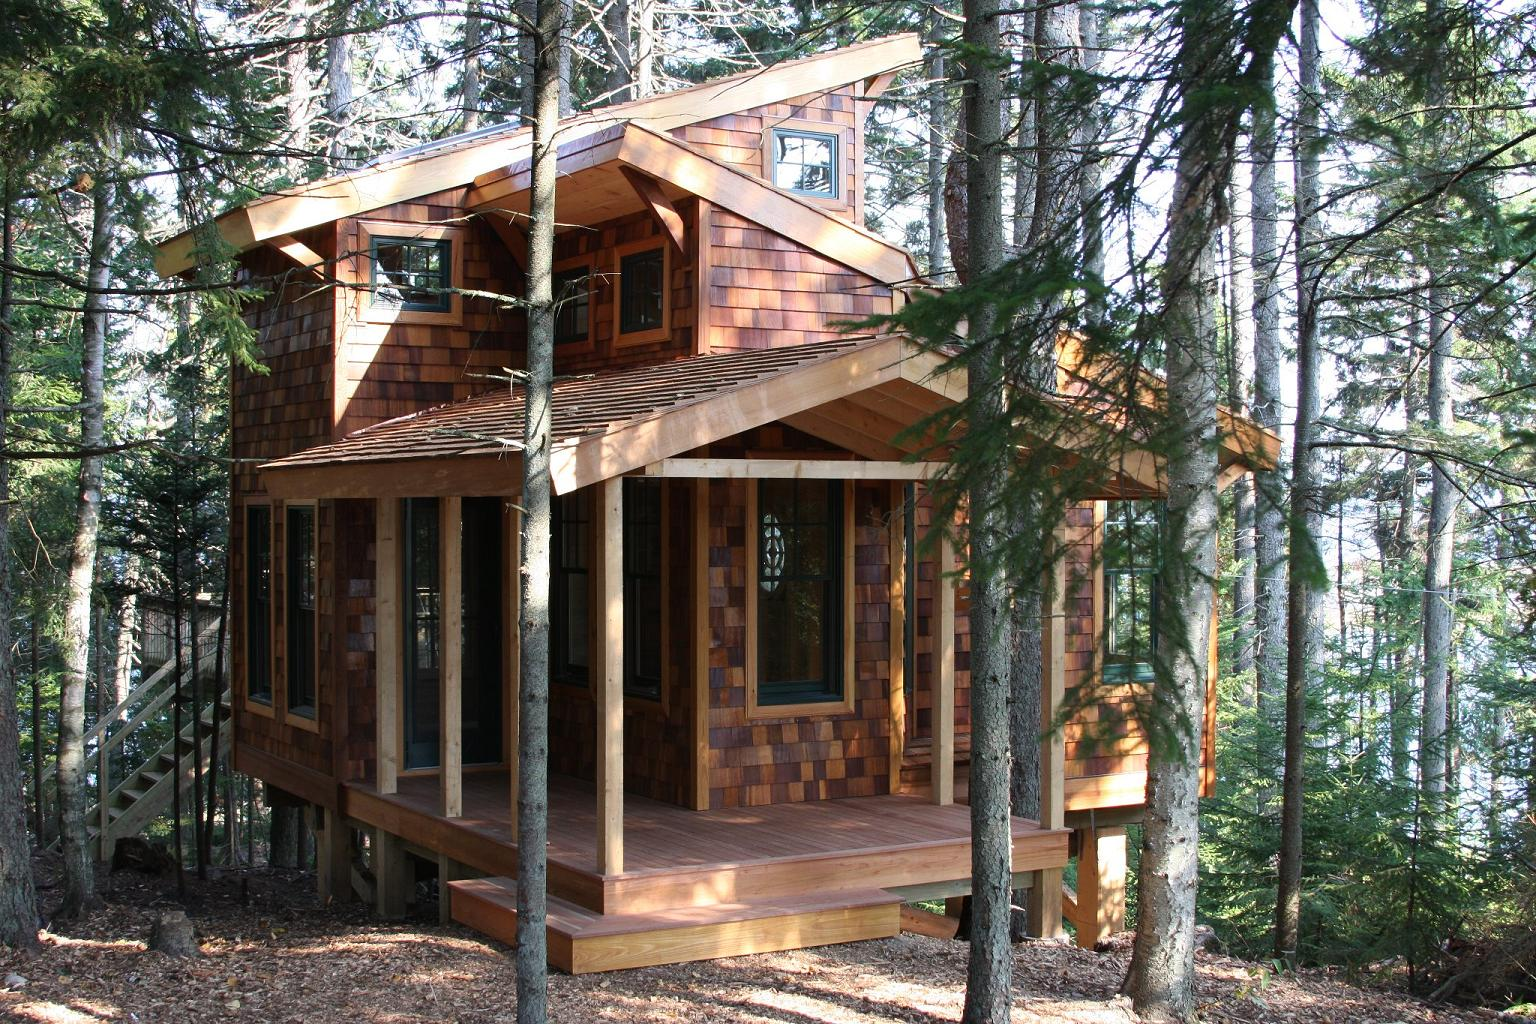 Playhouse Treehouse Designs Furnitureplans